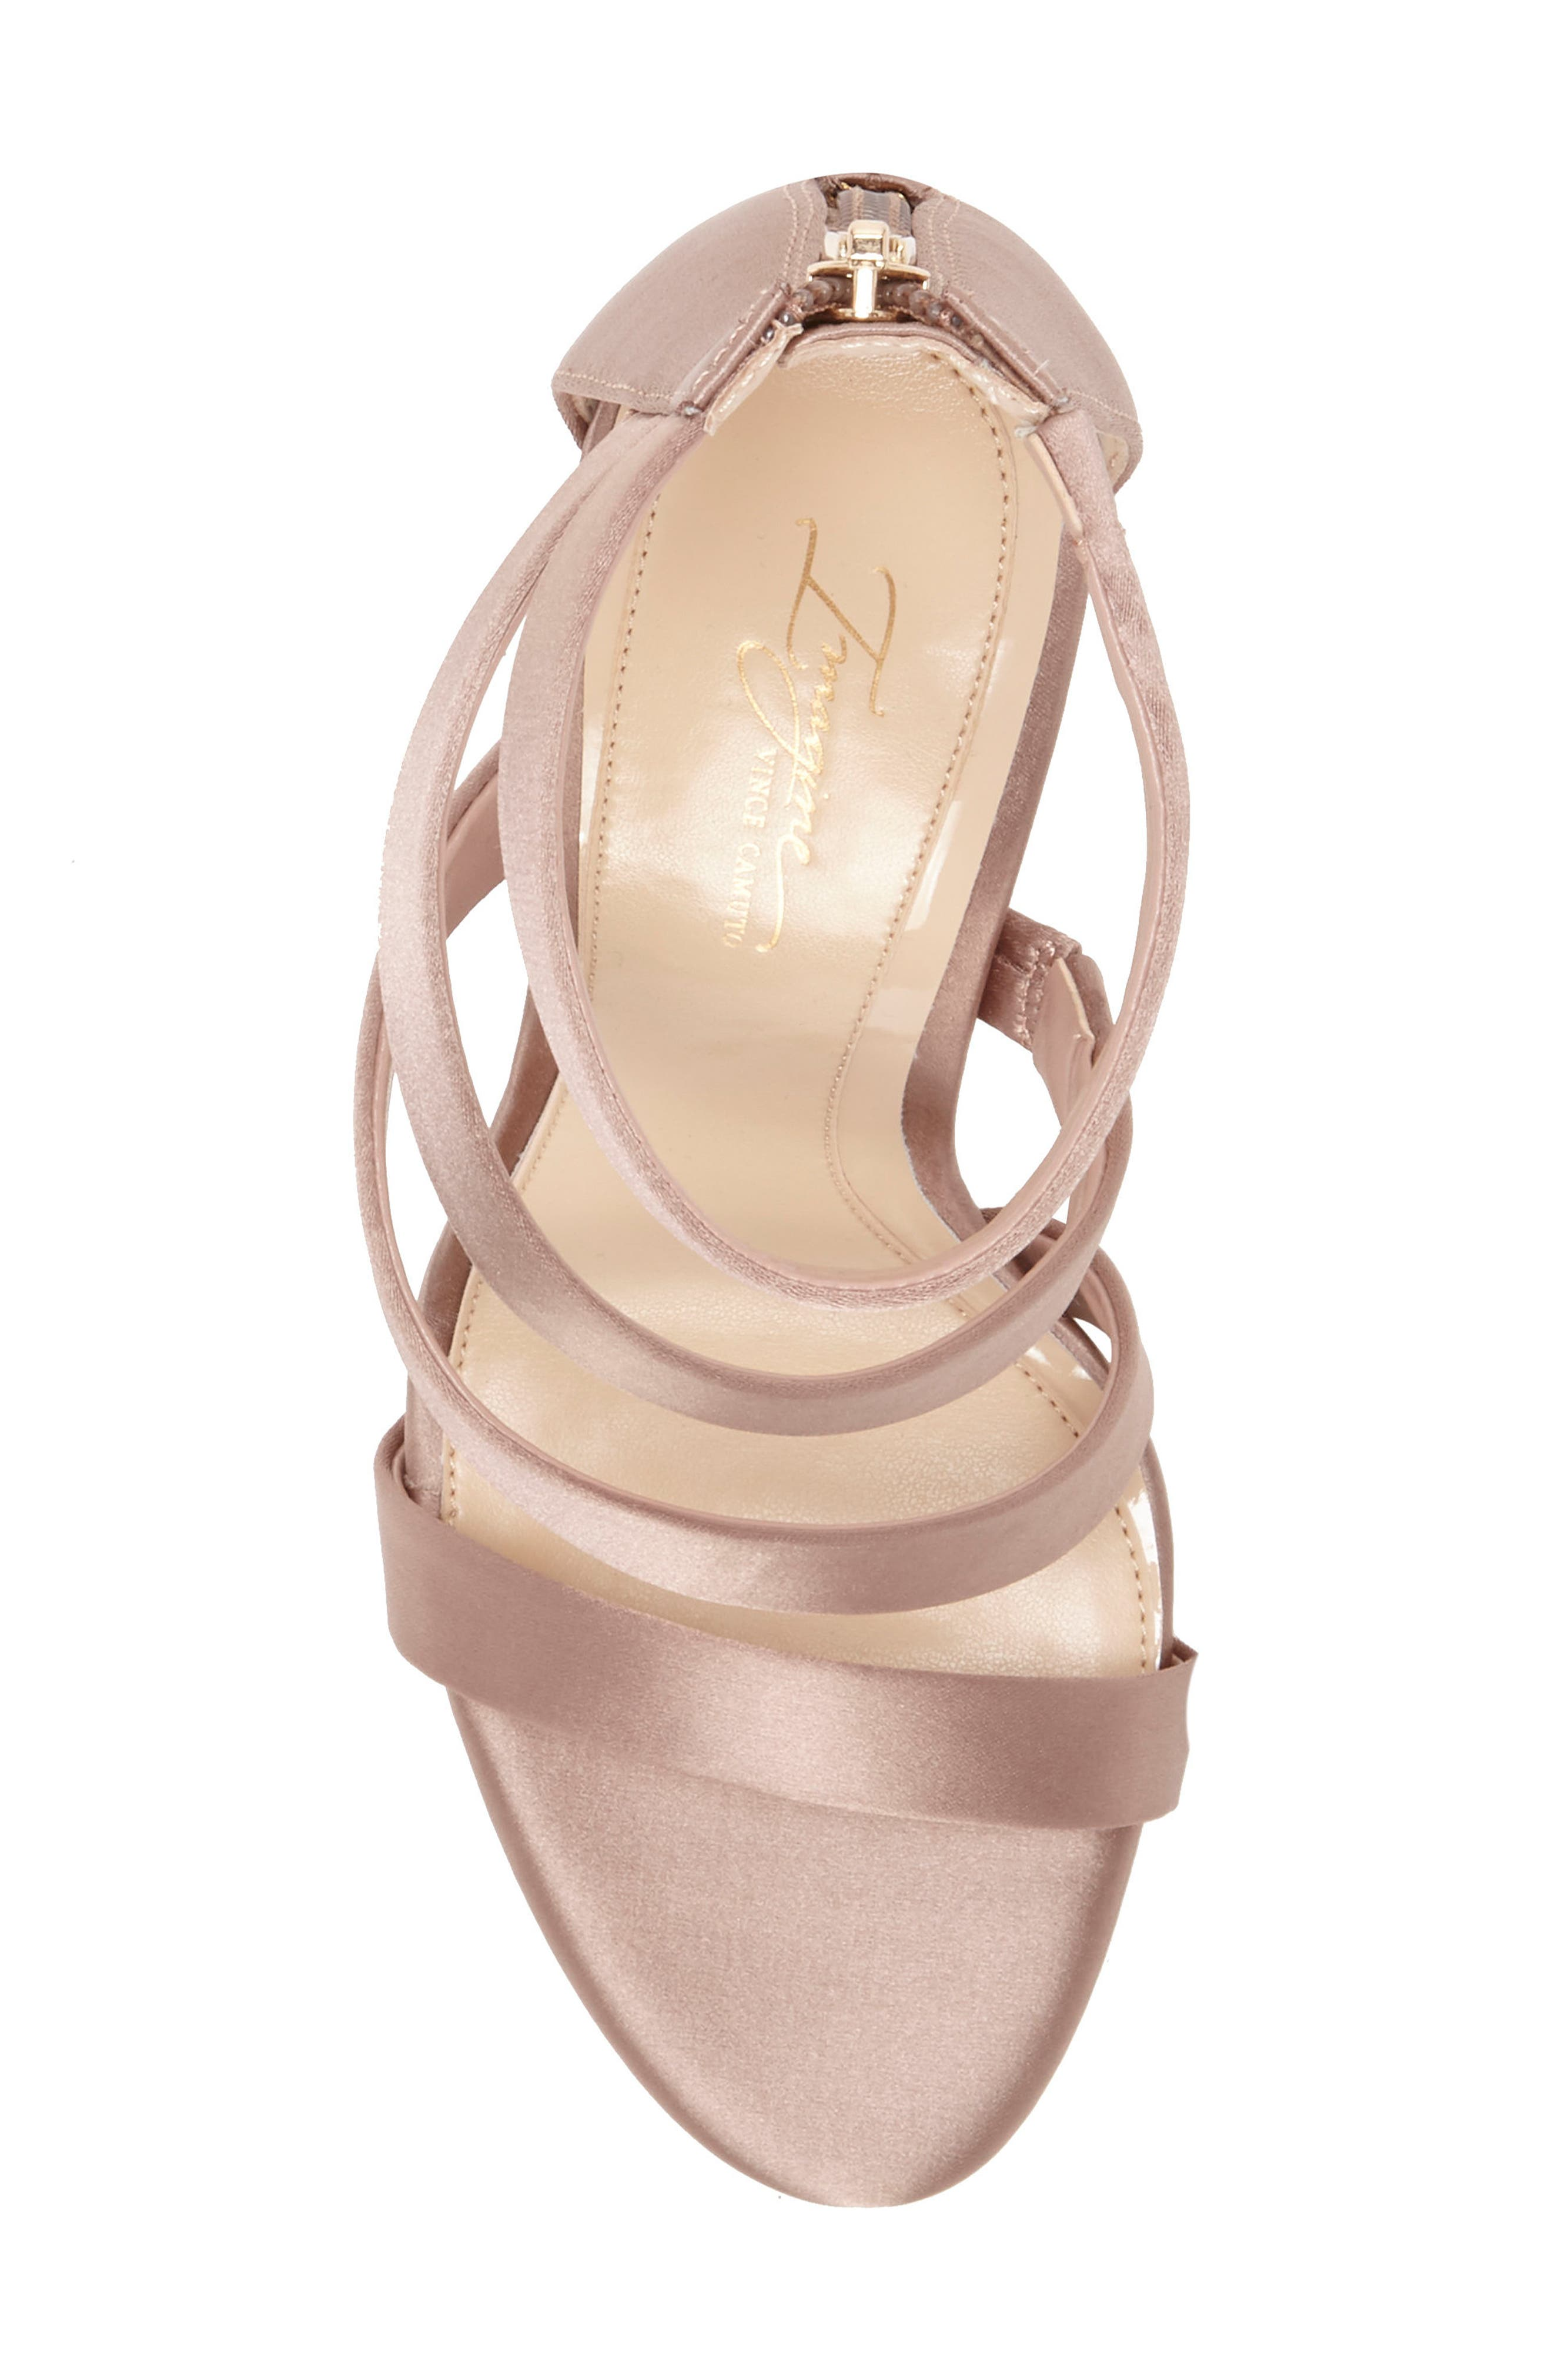 Imagine Vince Camuto Dalles Tall Strappy Sandal,                             Alternate thumbnail 5, color,                             WARM TAUPE SATIN